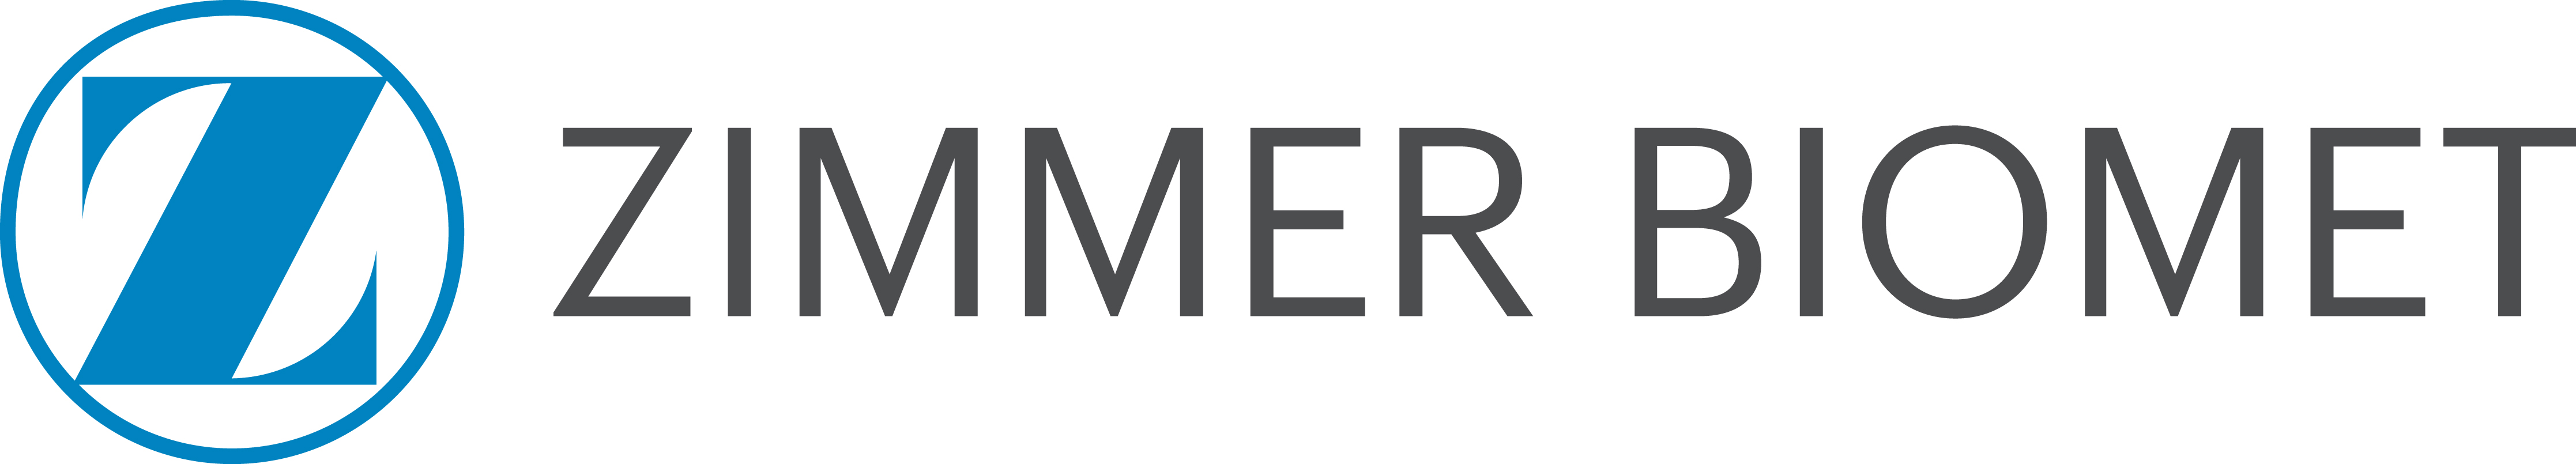 Zimmer biomet header logo pictures to pin on pinterest for Zimmer holdings